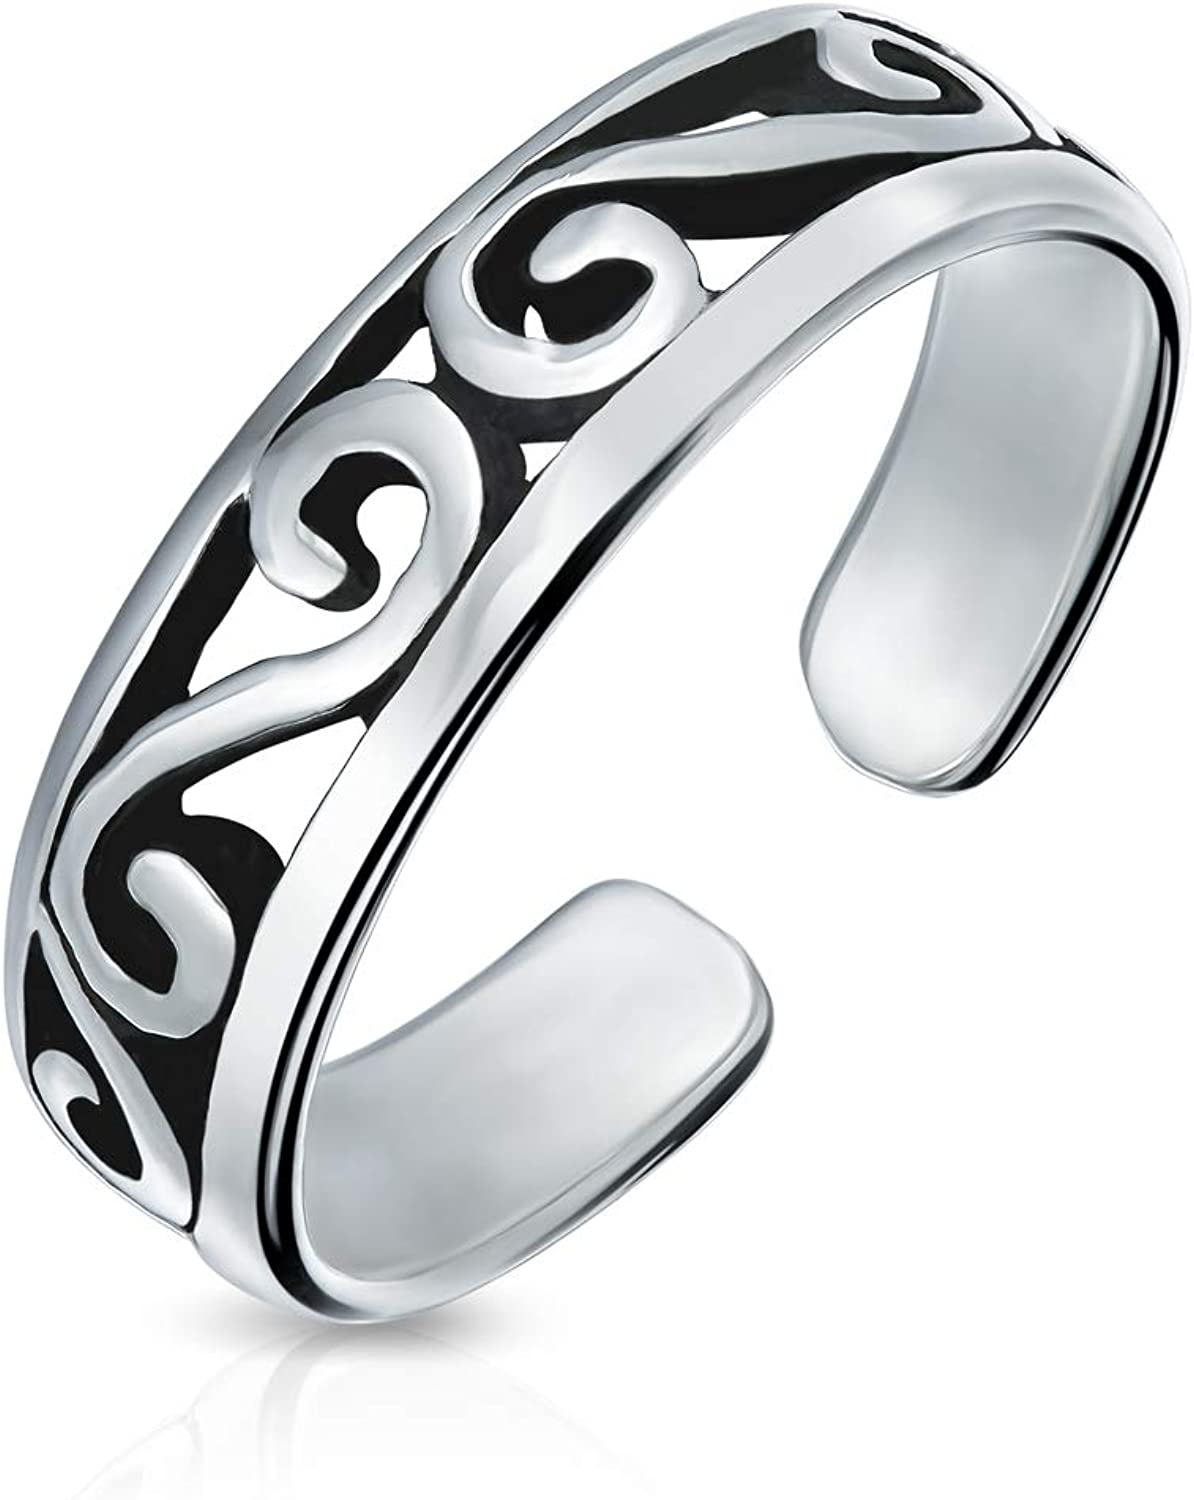 Cut-Out Celtic Swirl Filigree Thin Midi Band Tulsa Mall For 2021 autumn and winter new Toe Ring Women